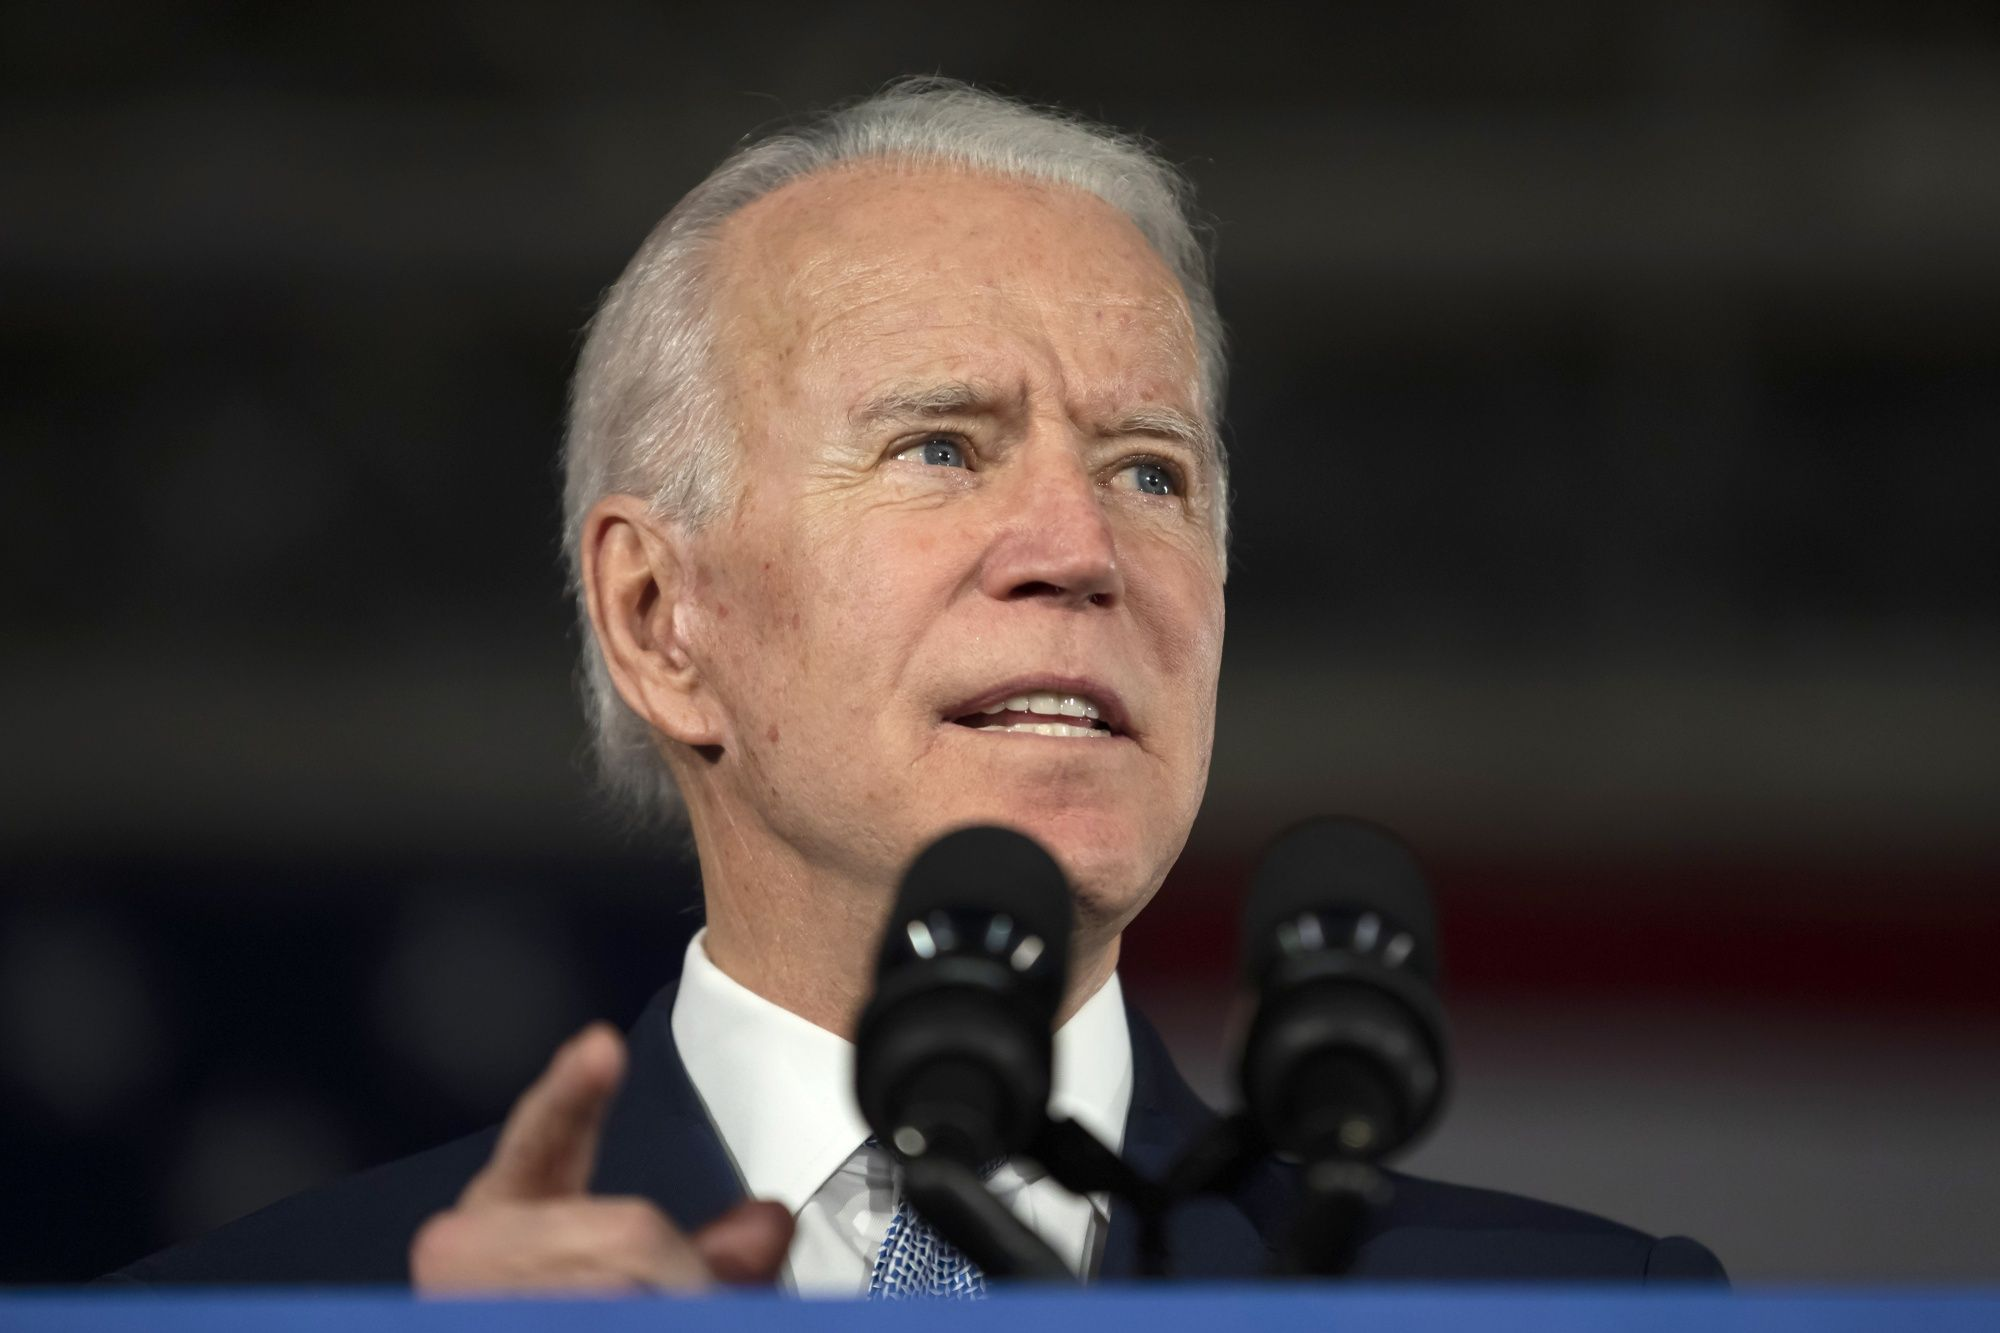 Biden Brings in New Campaign Manager for Fight Against Trump